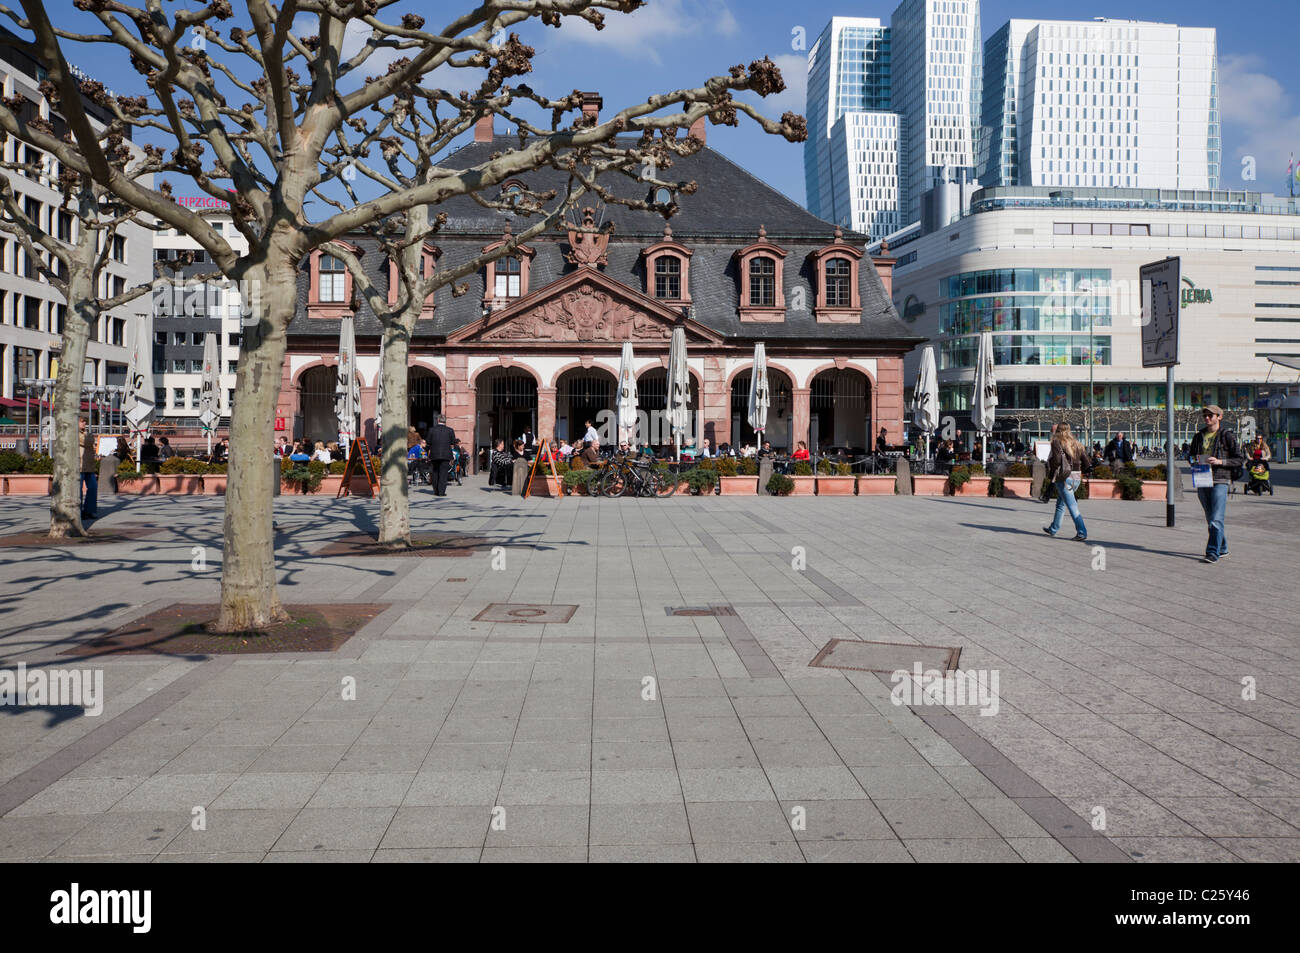 The Hauptwache is a central point of Frankfurt am Main and is one of the most famous plazas in the city. - Stock Image